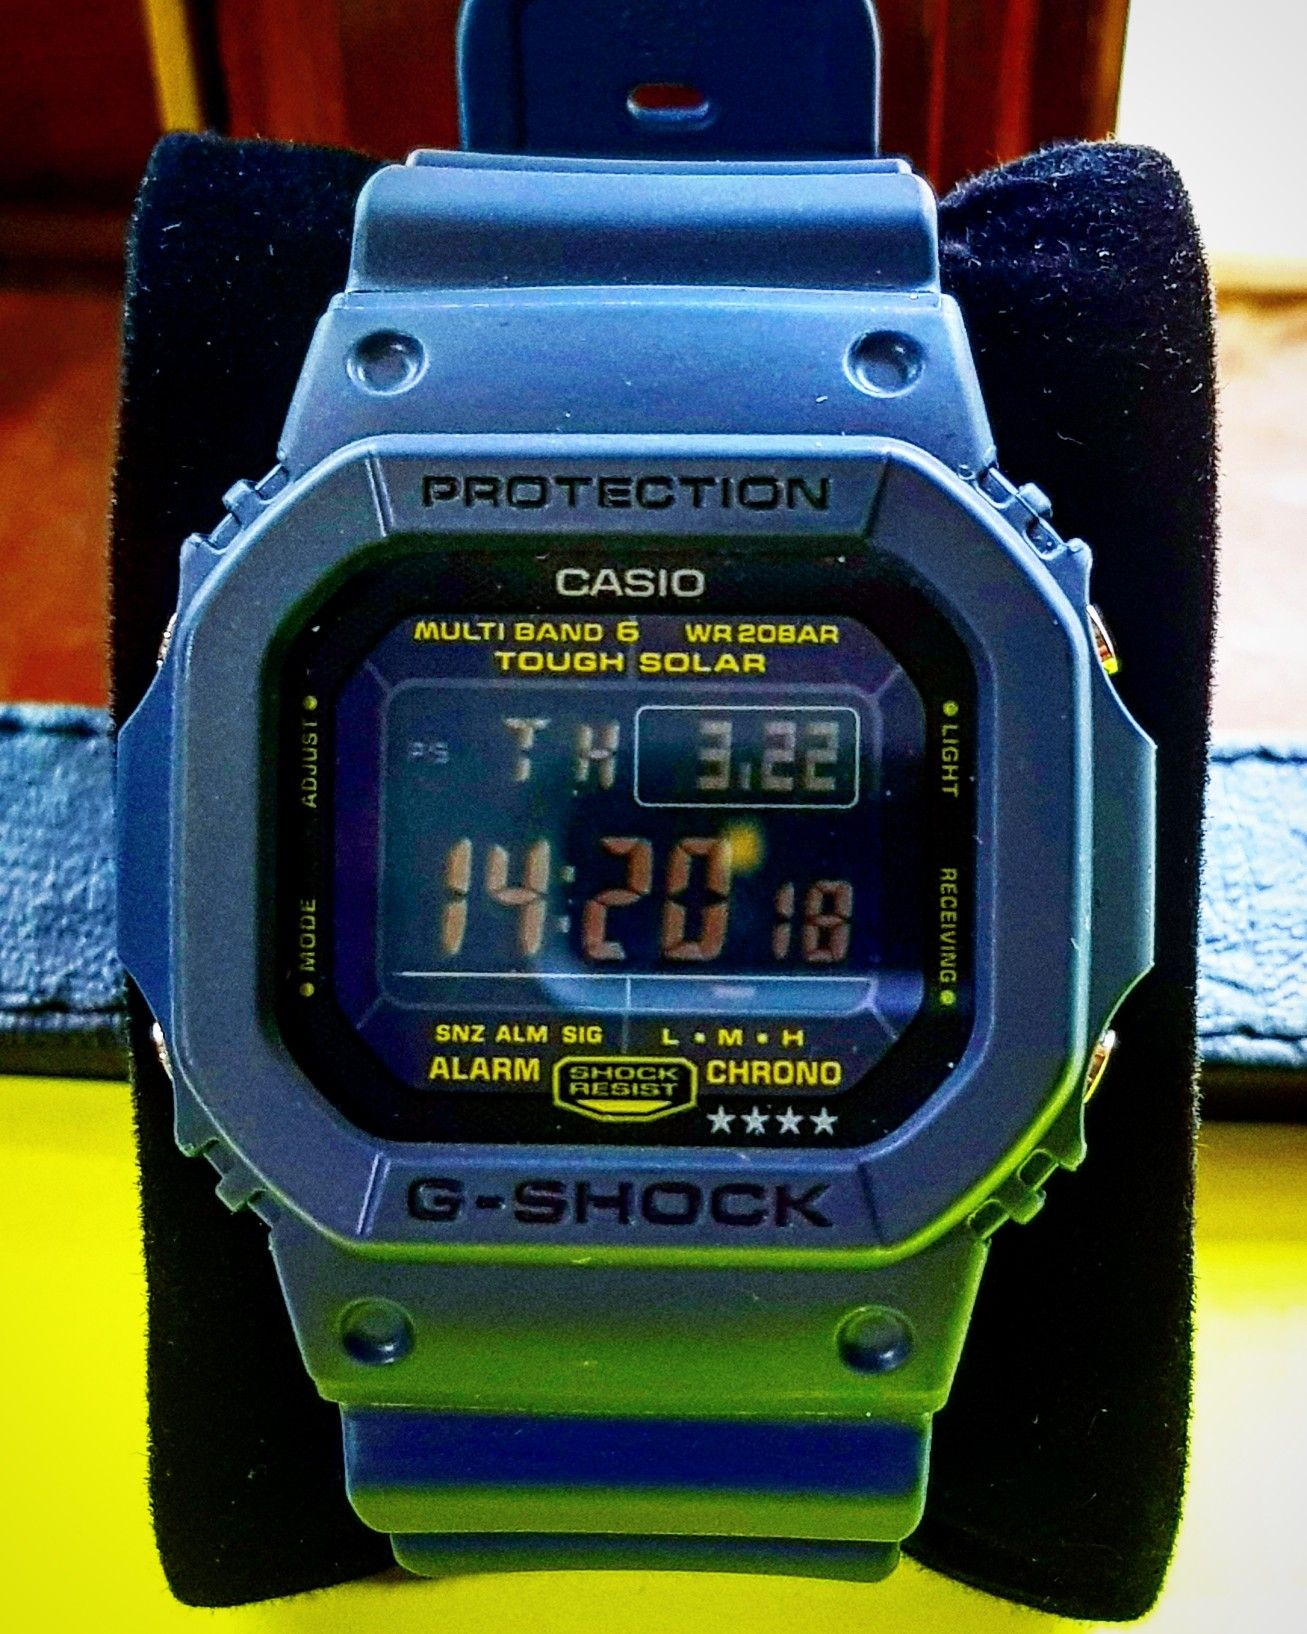 Gw M5610nv 2jf G Shock In 2018 Pinterest And Collection Casio Gshock Original Gd 100ms 3er Limited Colorway Digital Watch